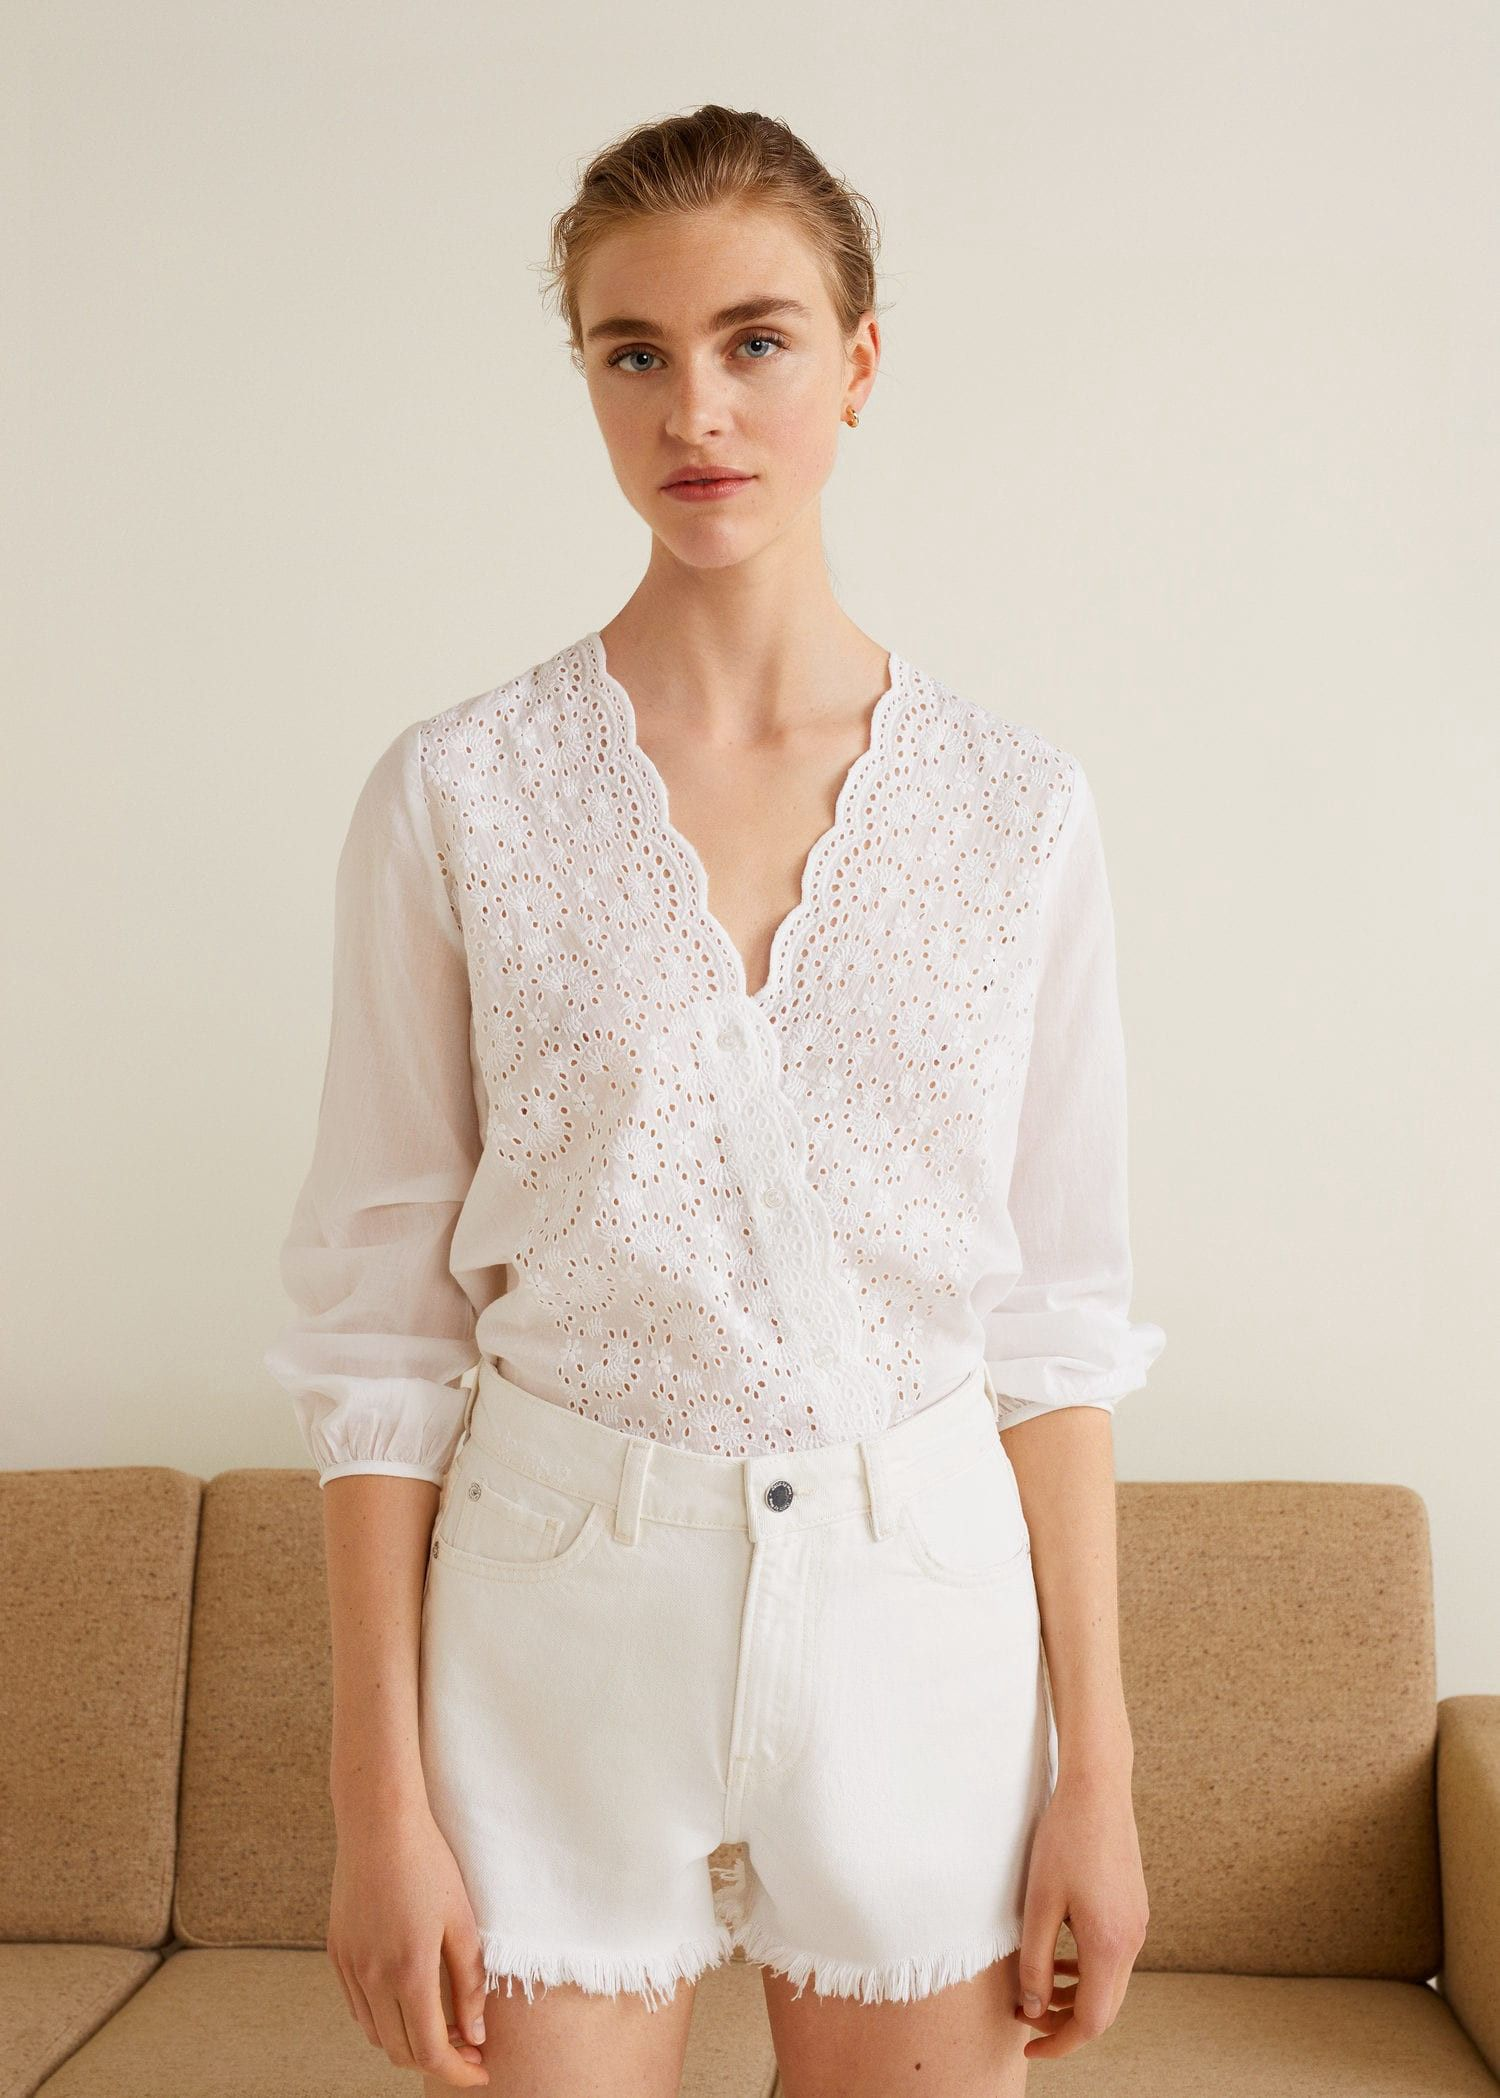 df087d09c31 Mango Embroidered Openwork Blouse - 4 in 2019 | Products | Shirt ...